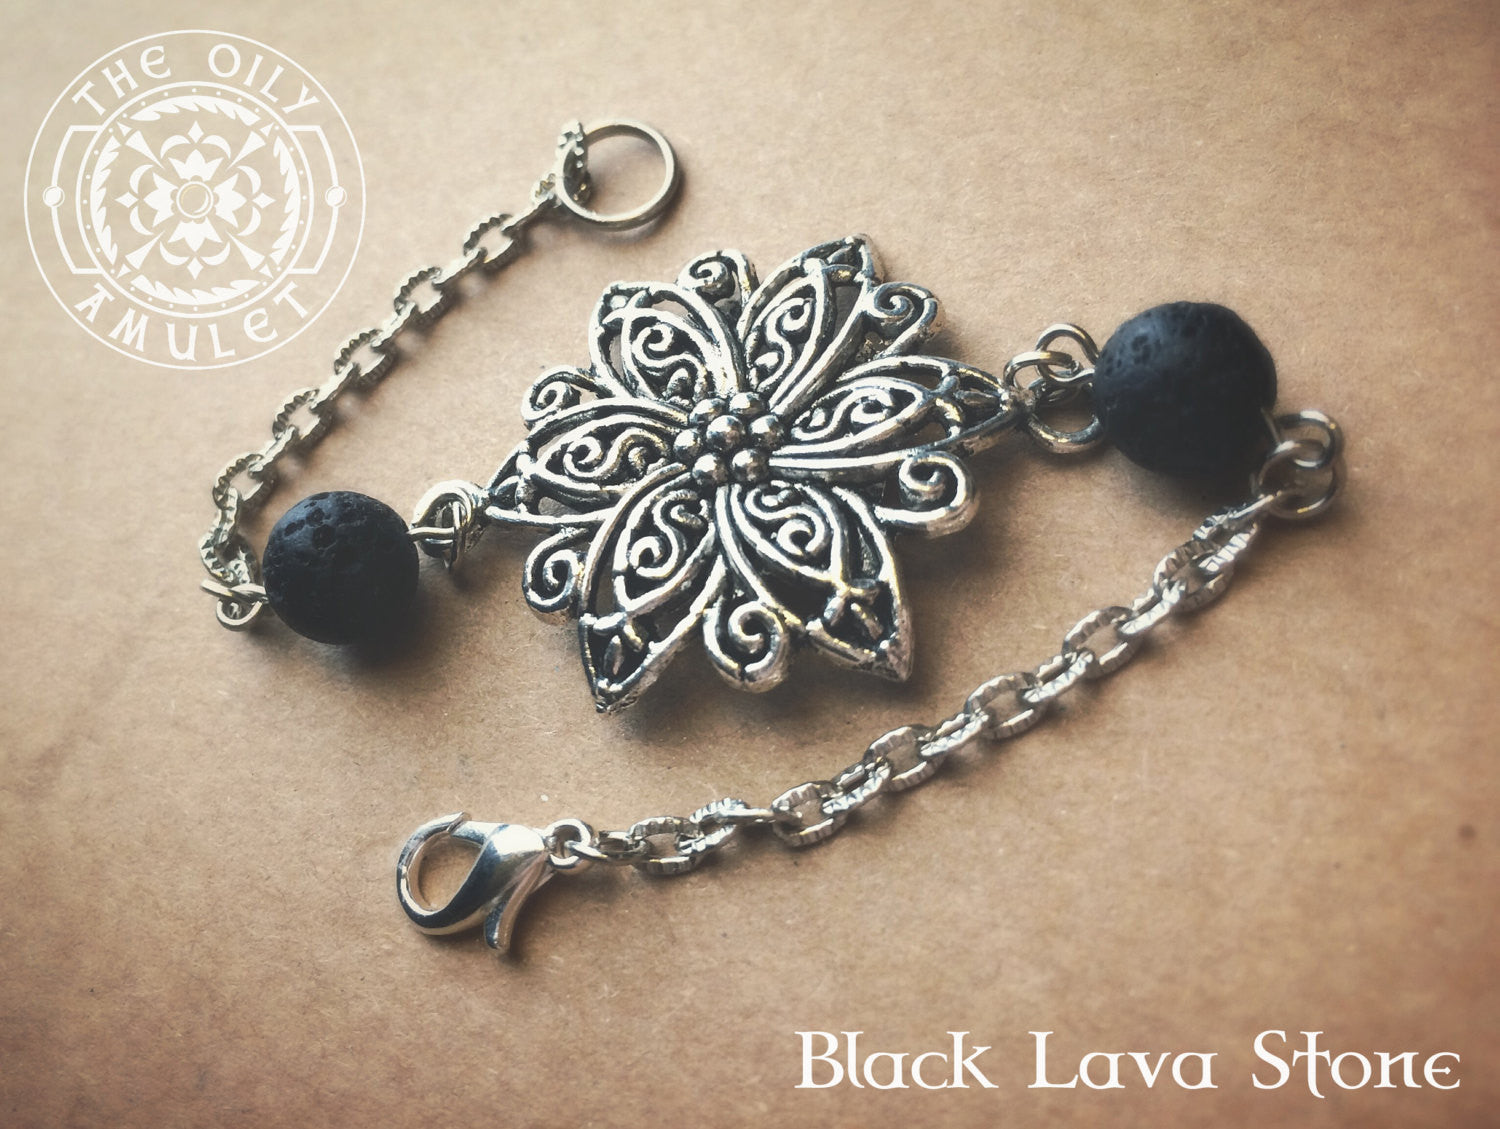 Flower Essential Oil Diffuser Absorb Bead Women's Bracelet - Antique Silver Tone - Lava Stone Beads 8mm